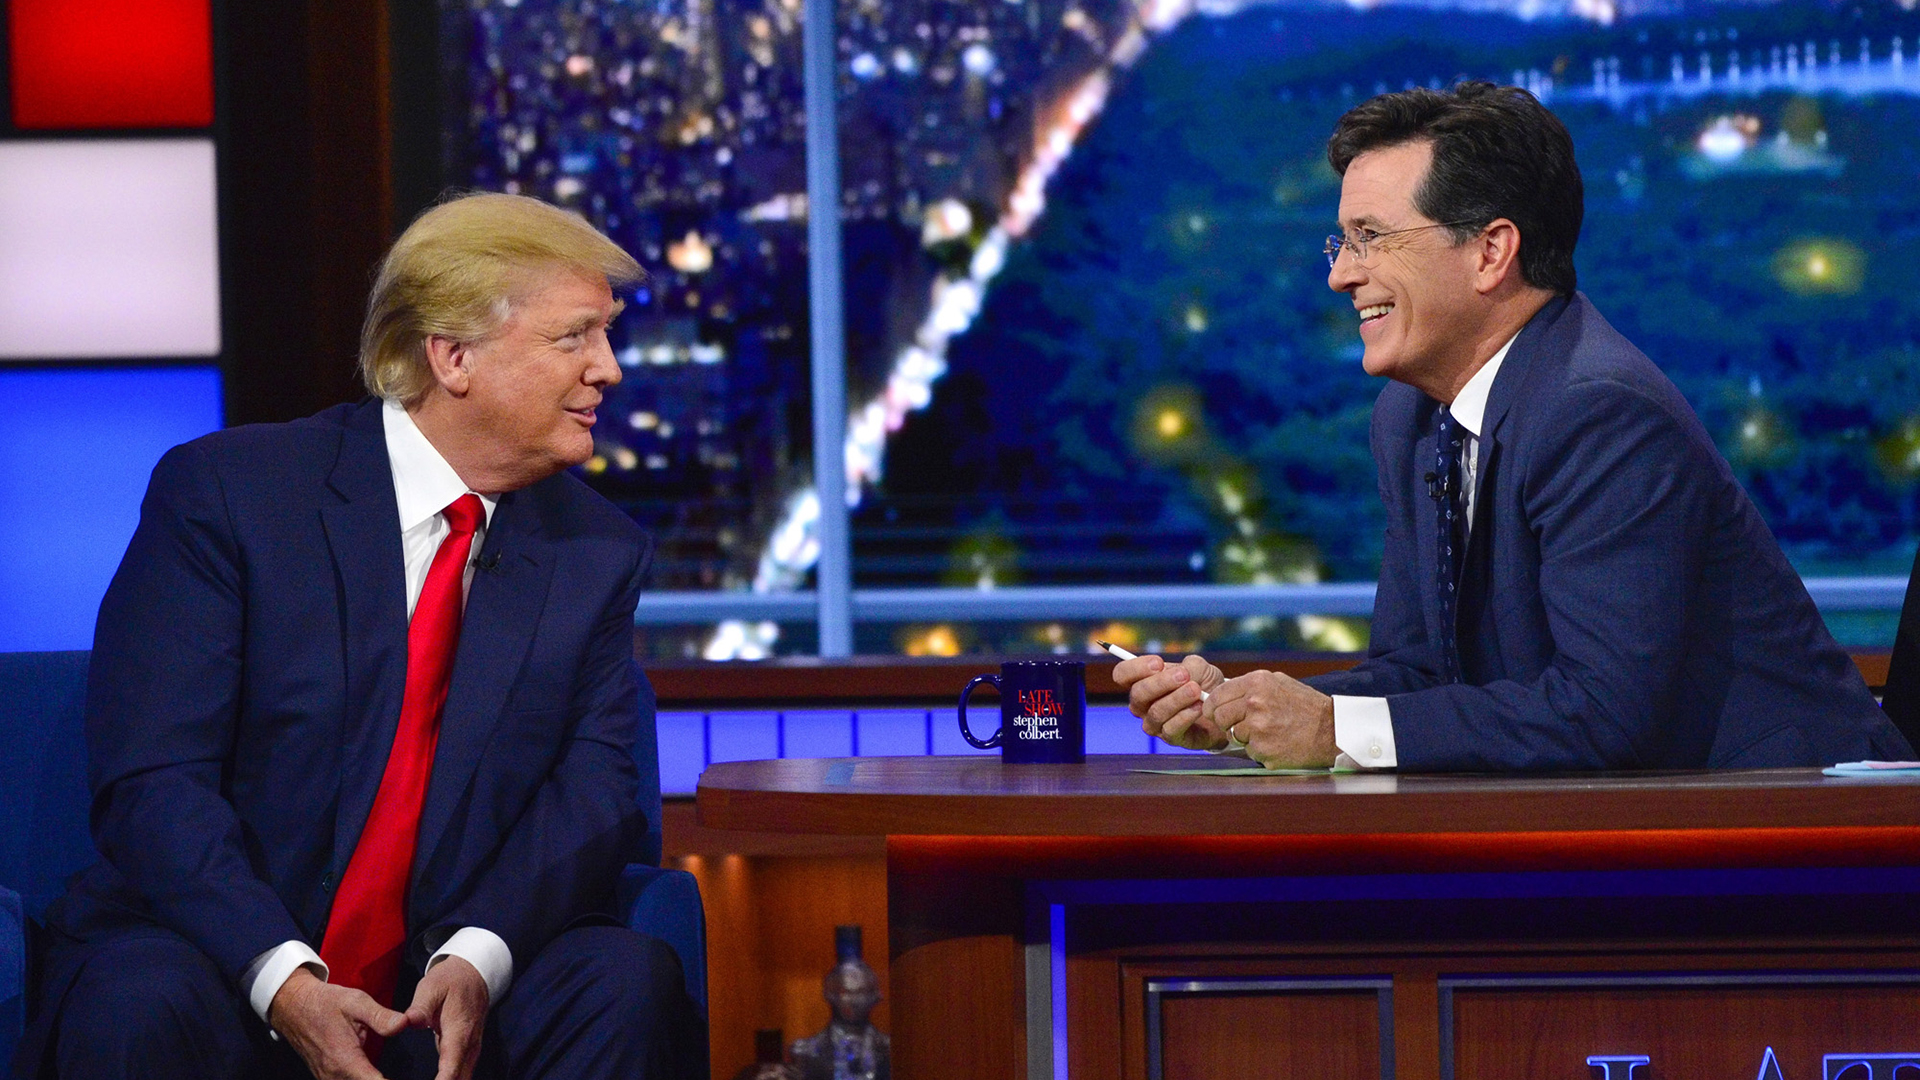 Donald Trump and Stephen Colbert